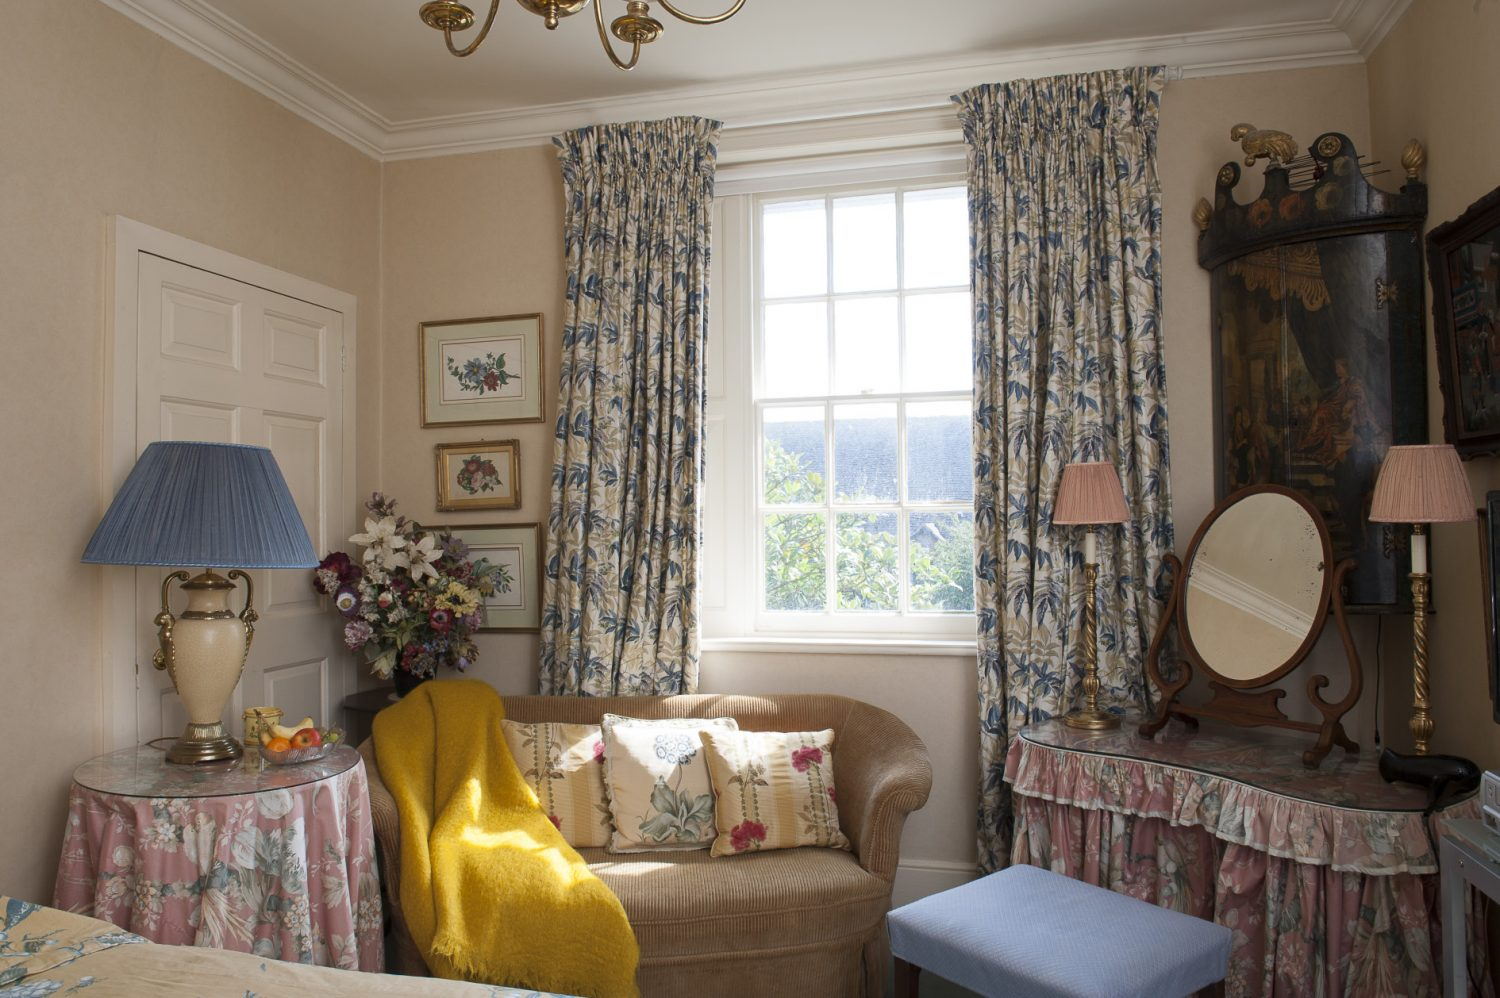 The second guest room known as the East Room is decorated in a soothing combination of teal blue and soft ochre